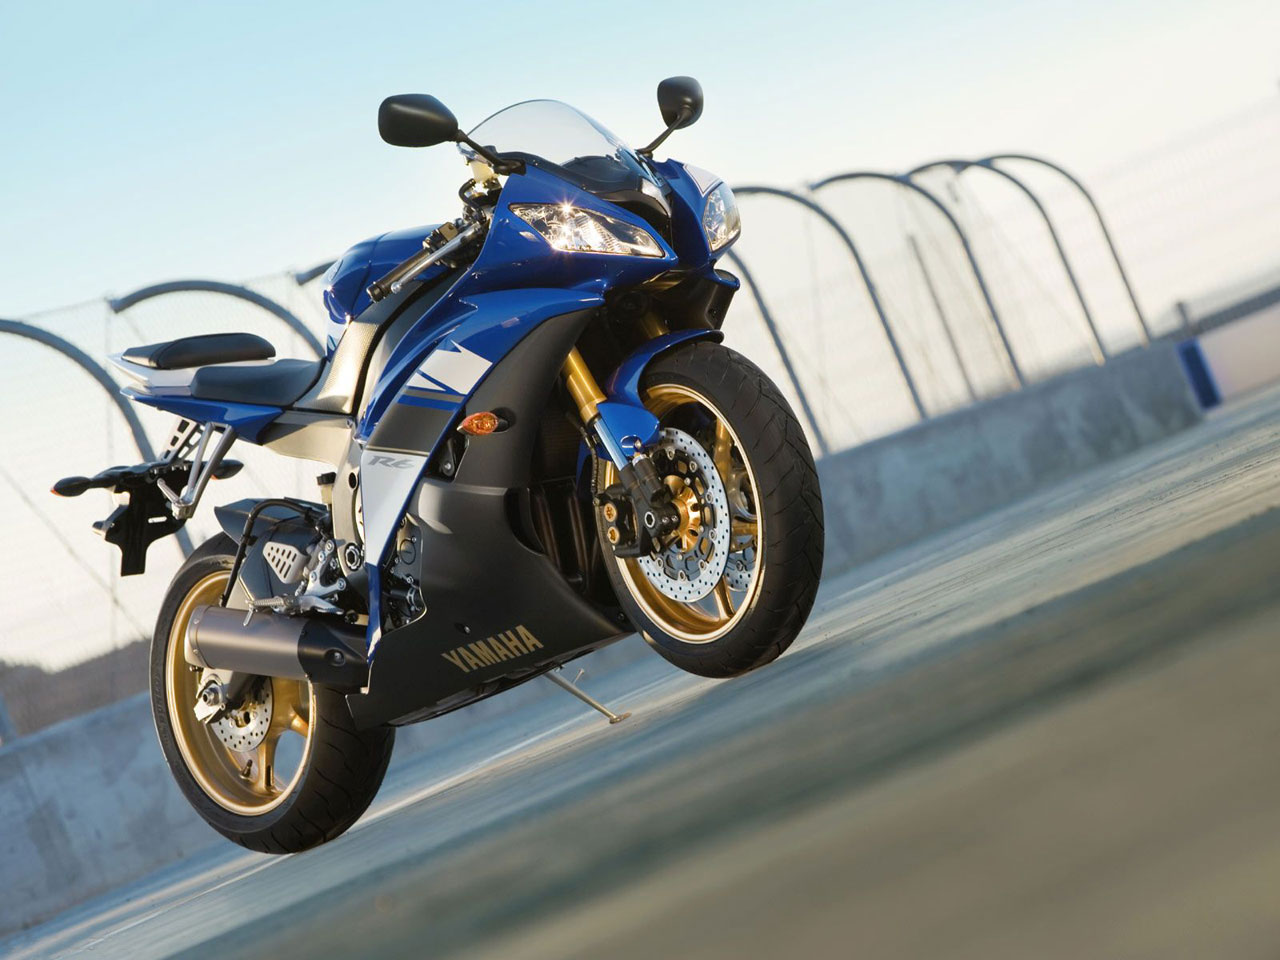 Yamaha R6 Sports Bike HD Motorcycles Wallpapers